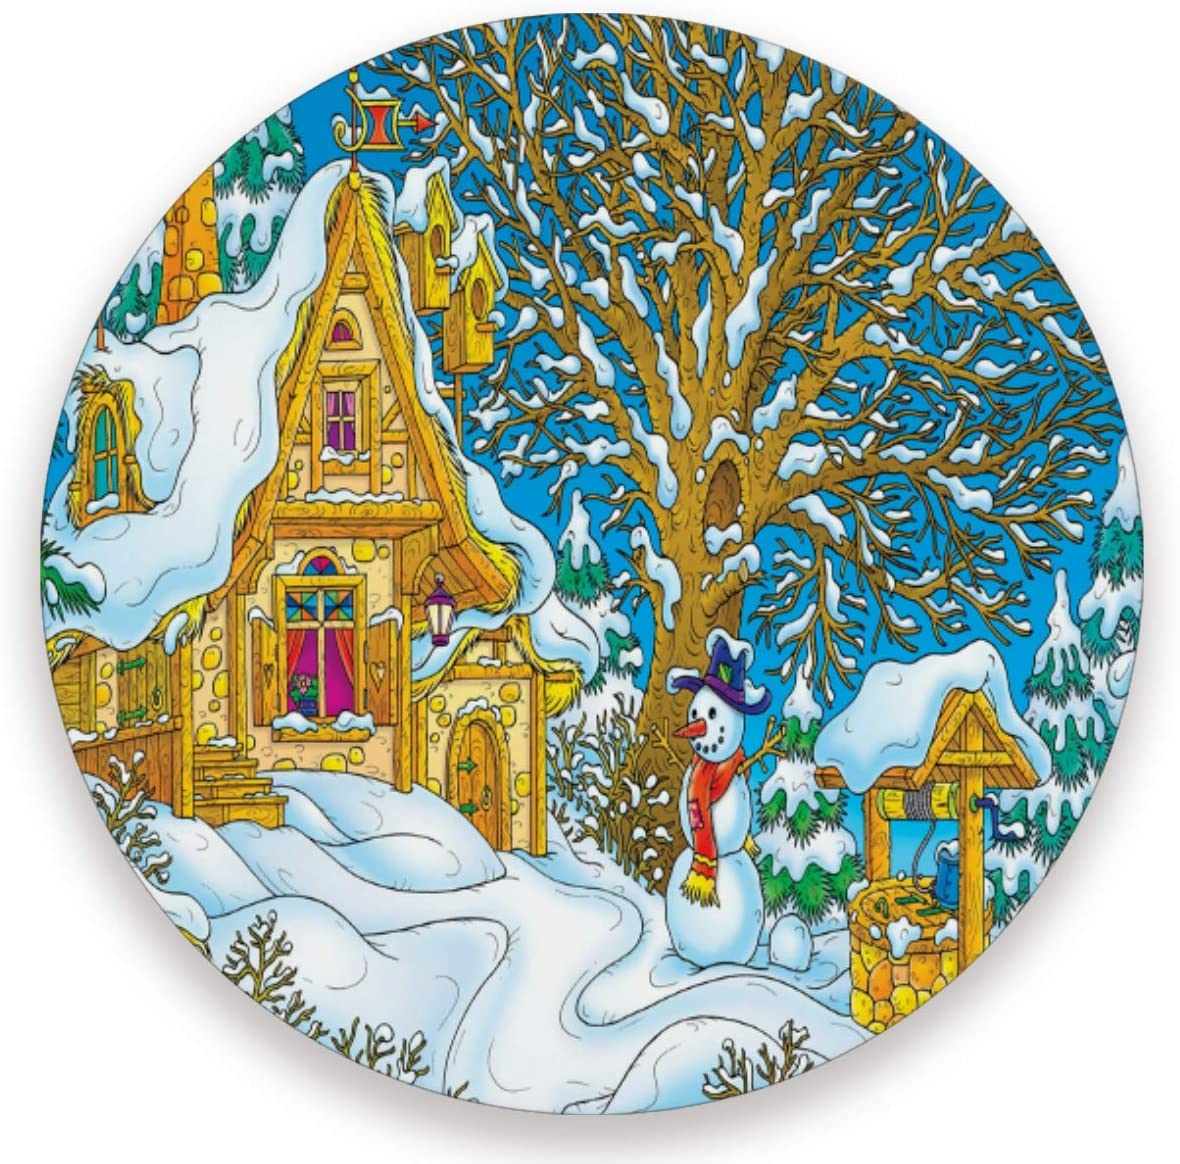 Olinyou Vintage Christmas Village Santa Snowman House Coaster for Drinks 1 Pieces Absorbent Ceramic Stone Coasters with Cork Base